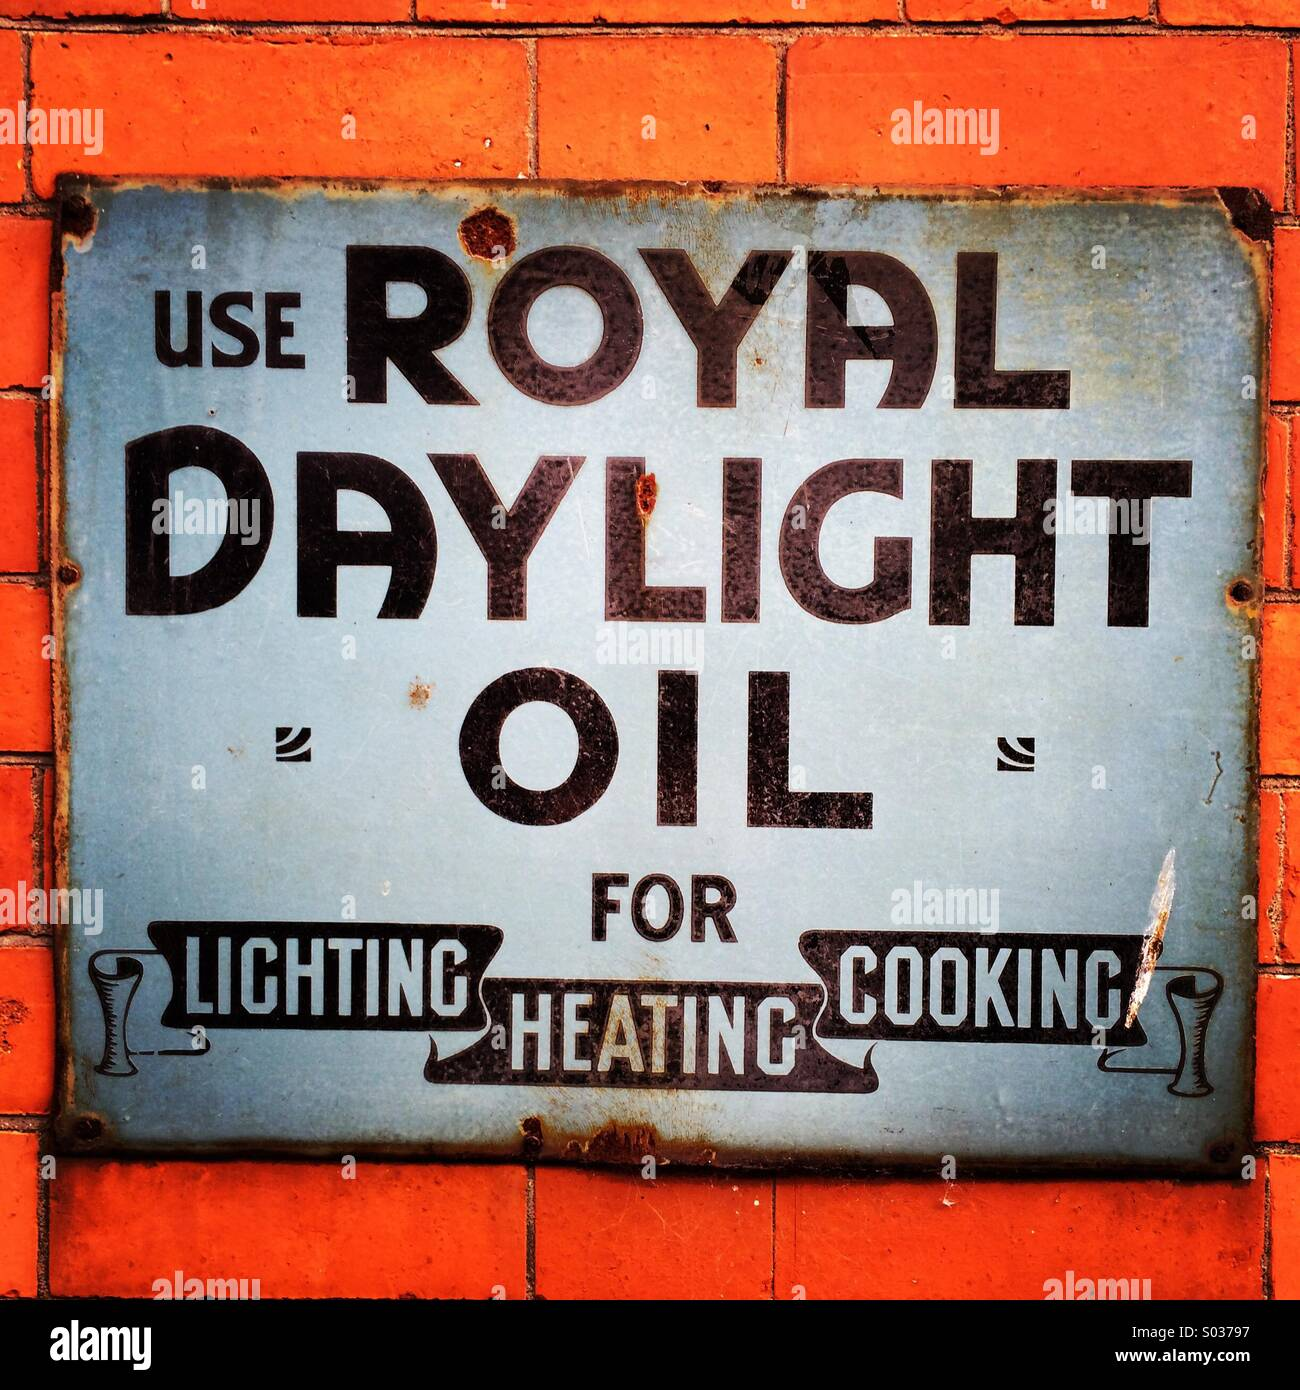 Royal Daylight Oil authentic wall advertisement. - Stock Image